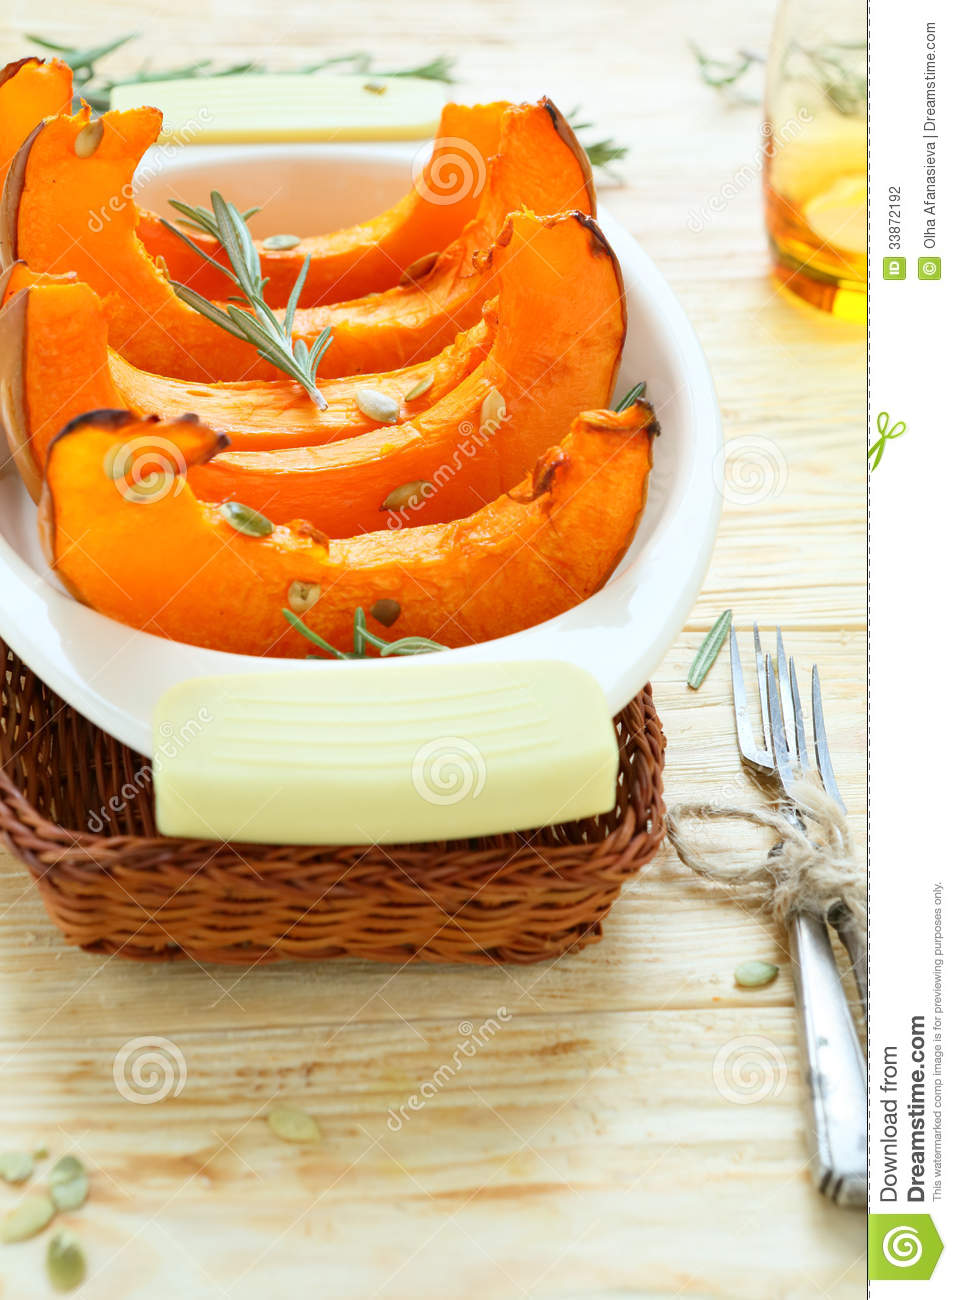 Baked Pumpkin Wedges In A Baking Dish Stock Photography - Image ...